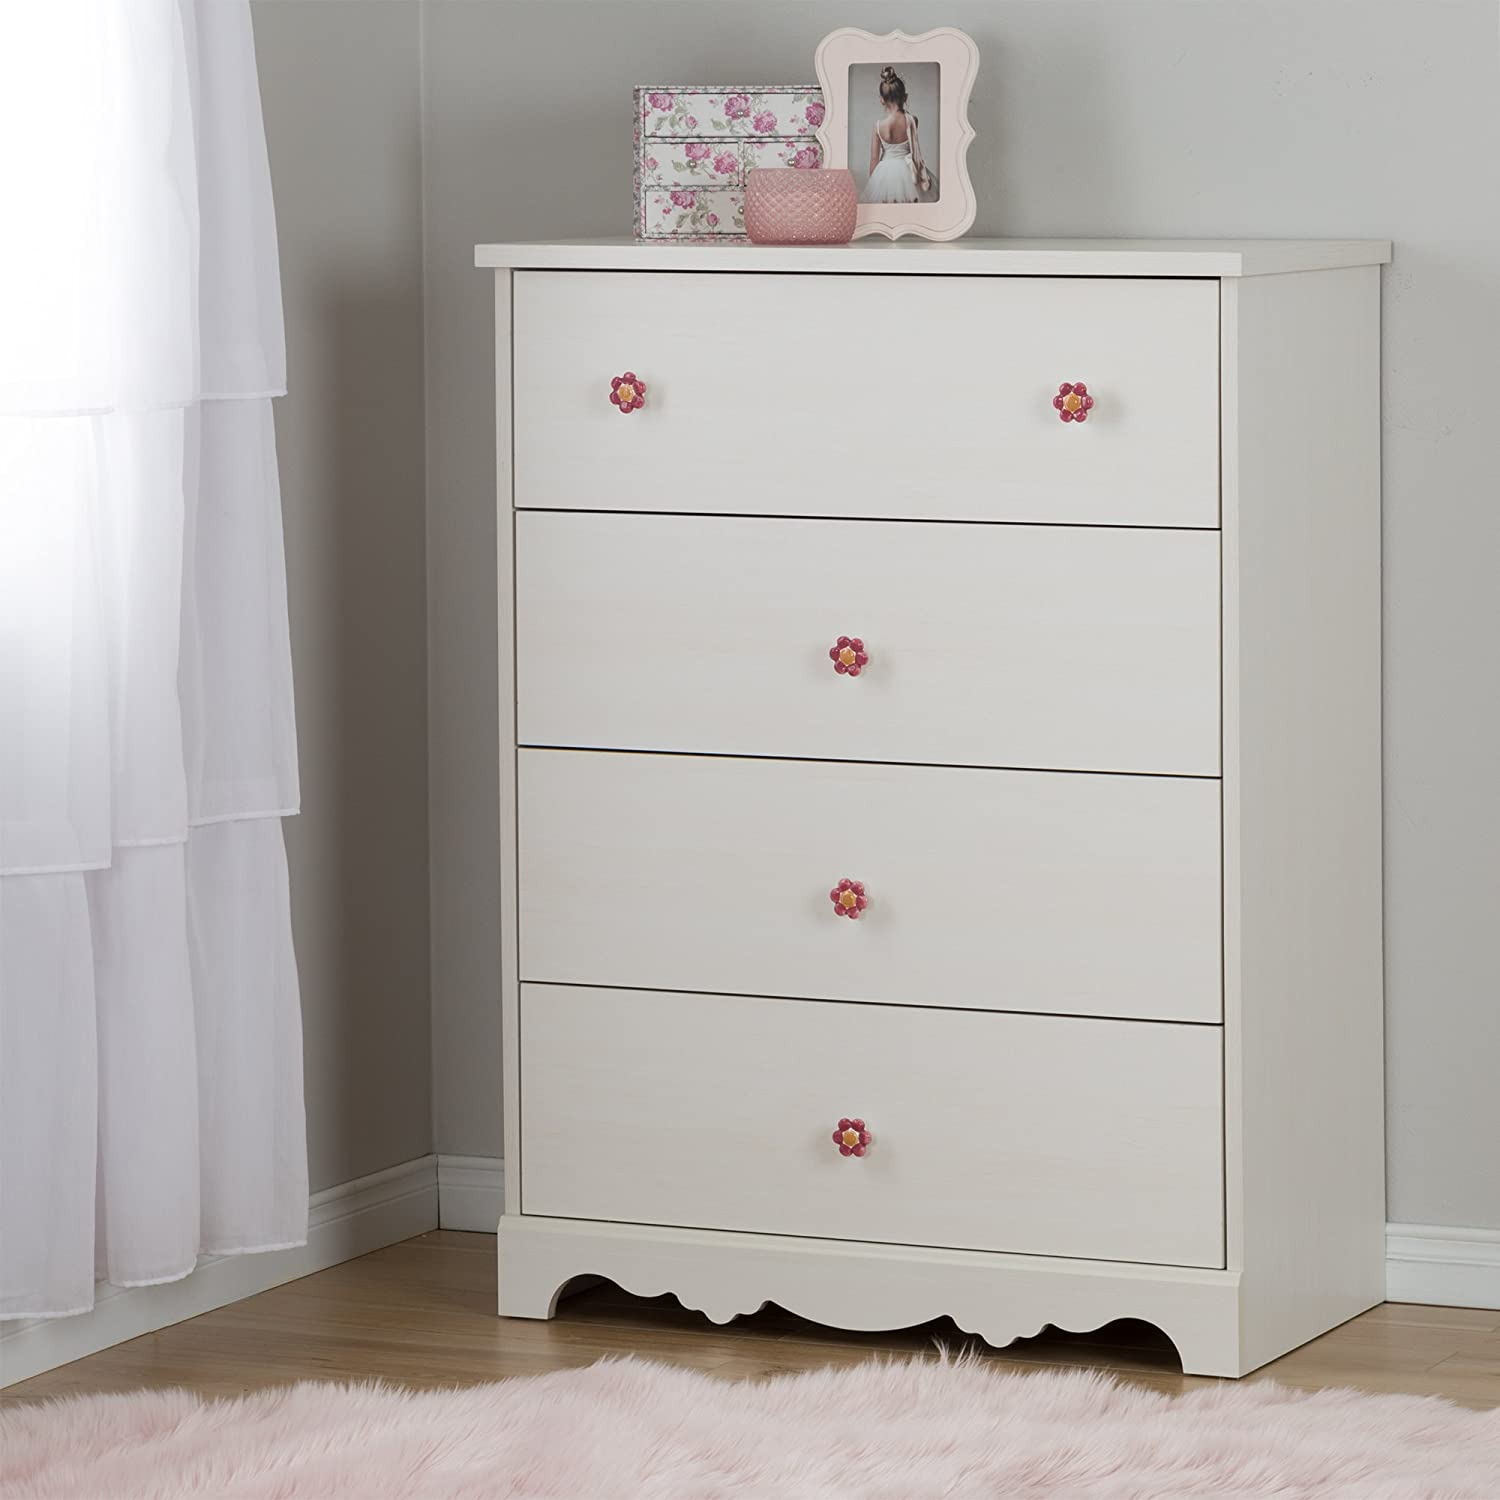 South Shore Furniture Lily pink 4-Drawer Chest, White Wash